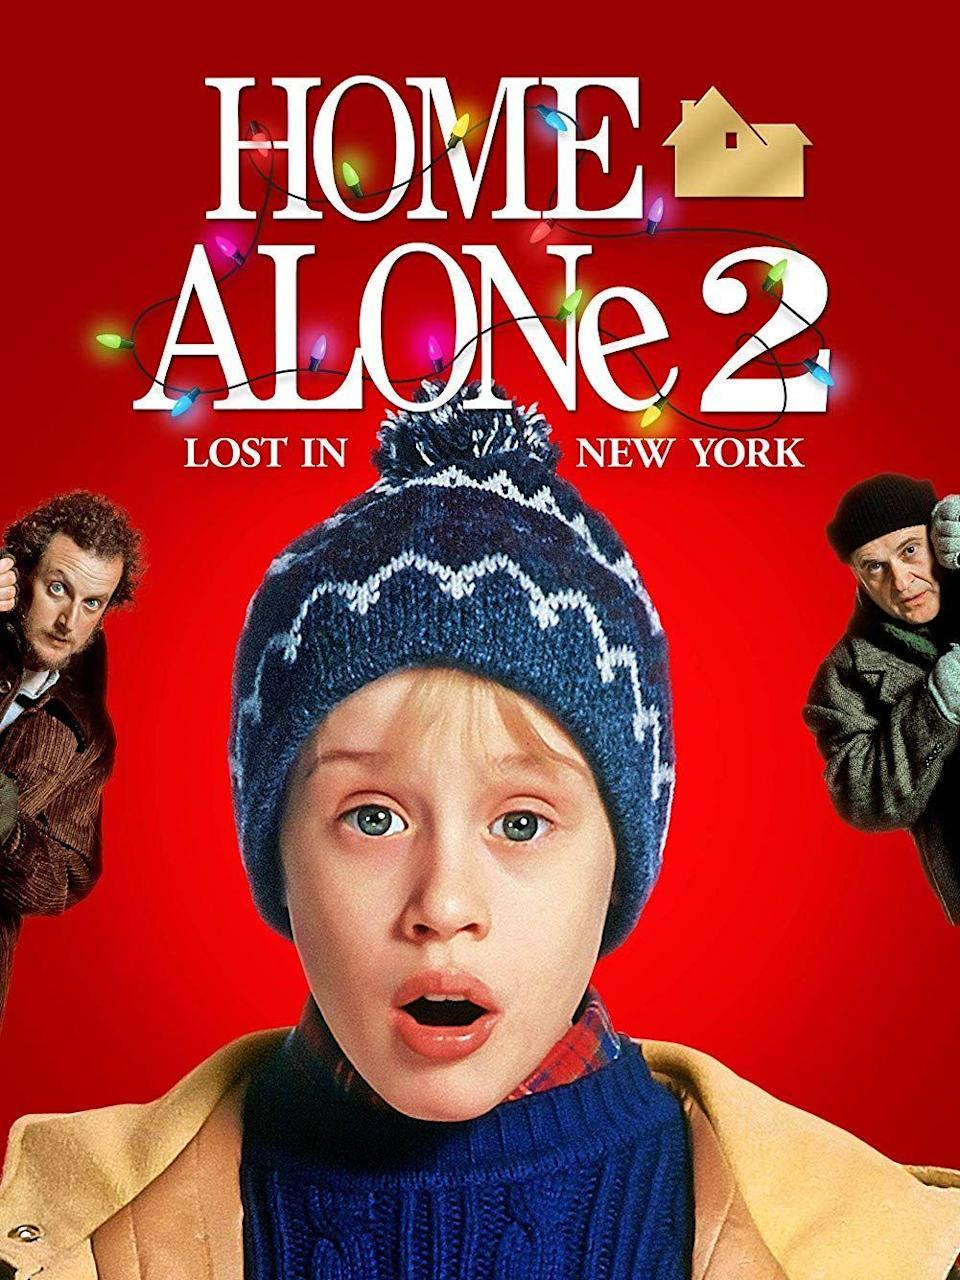 """<p>Kevin McCallister's family manages to leave him behind yet again in <em>Home Alone 2</em> ... and this time around he ends up in New York City, where he manages to outwit the Wet Bandits once more. This nostalgic movie will make you want to return home for the holidays.</p><p><a class=""""link rapid-noclick-resp"""" href=""""https://www.amazon.com/Home-Alone-Lost-New-York/dp/B00AGH54XK/?tag=syn-yahoo-20&ascsubtag=%5Bartid%7C10055.g.1315%5Bsrc%7Cyahoo-us"""" rel=""""nofollow noopener"""" target=""""_blank"""" data-ylk=""""slk:WATCH NOW"""">WATCH NOW</a></p>"""